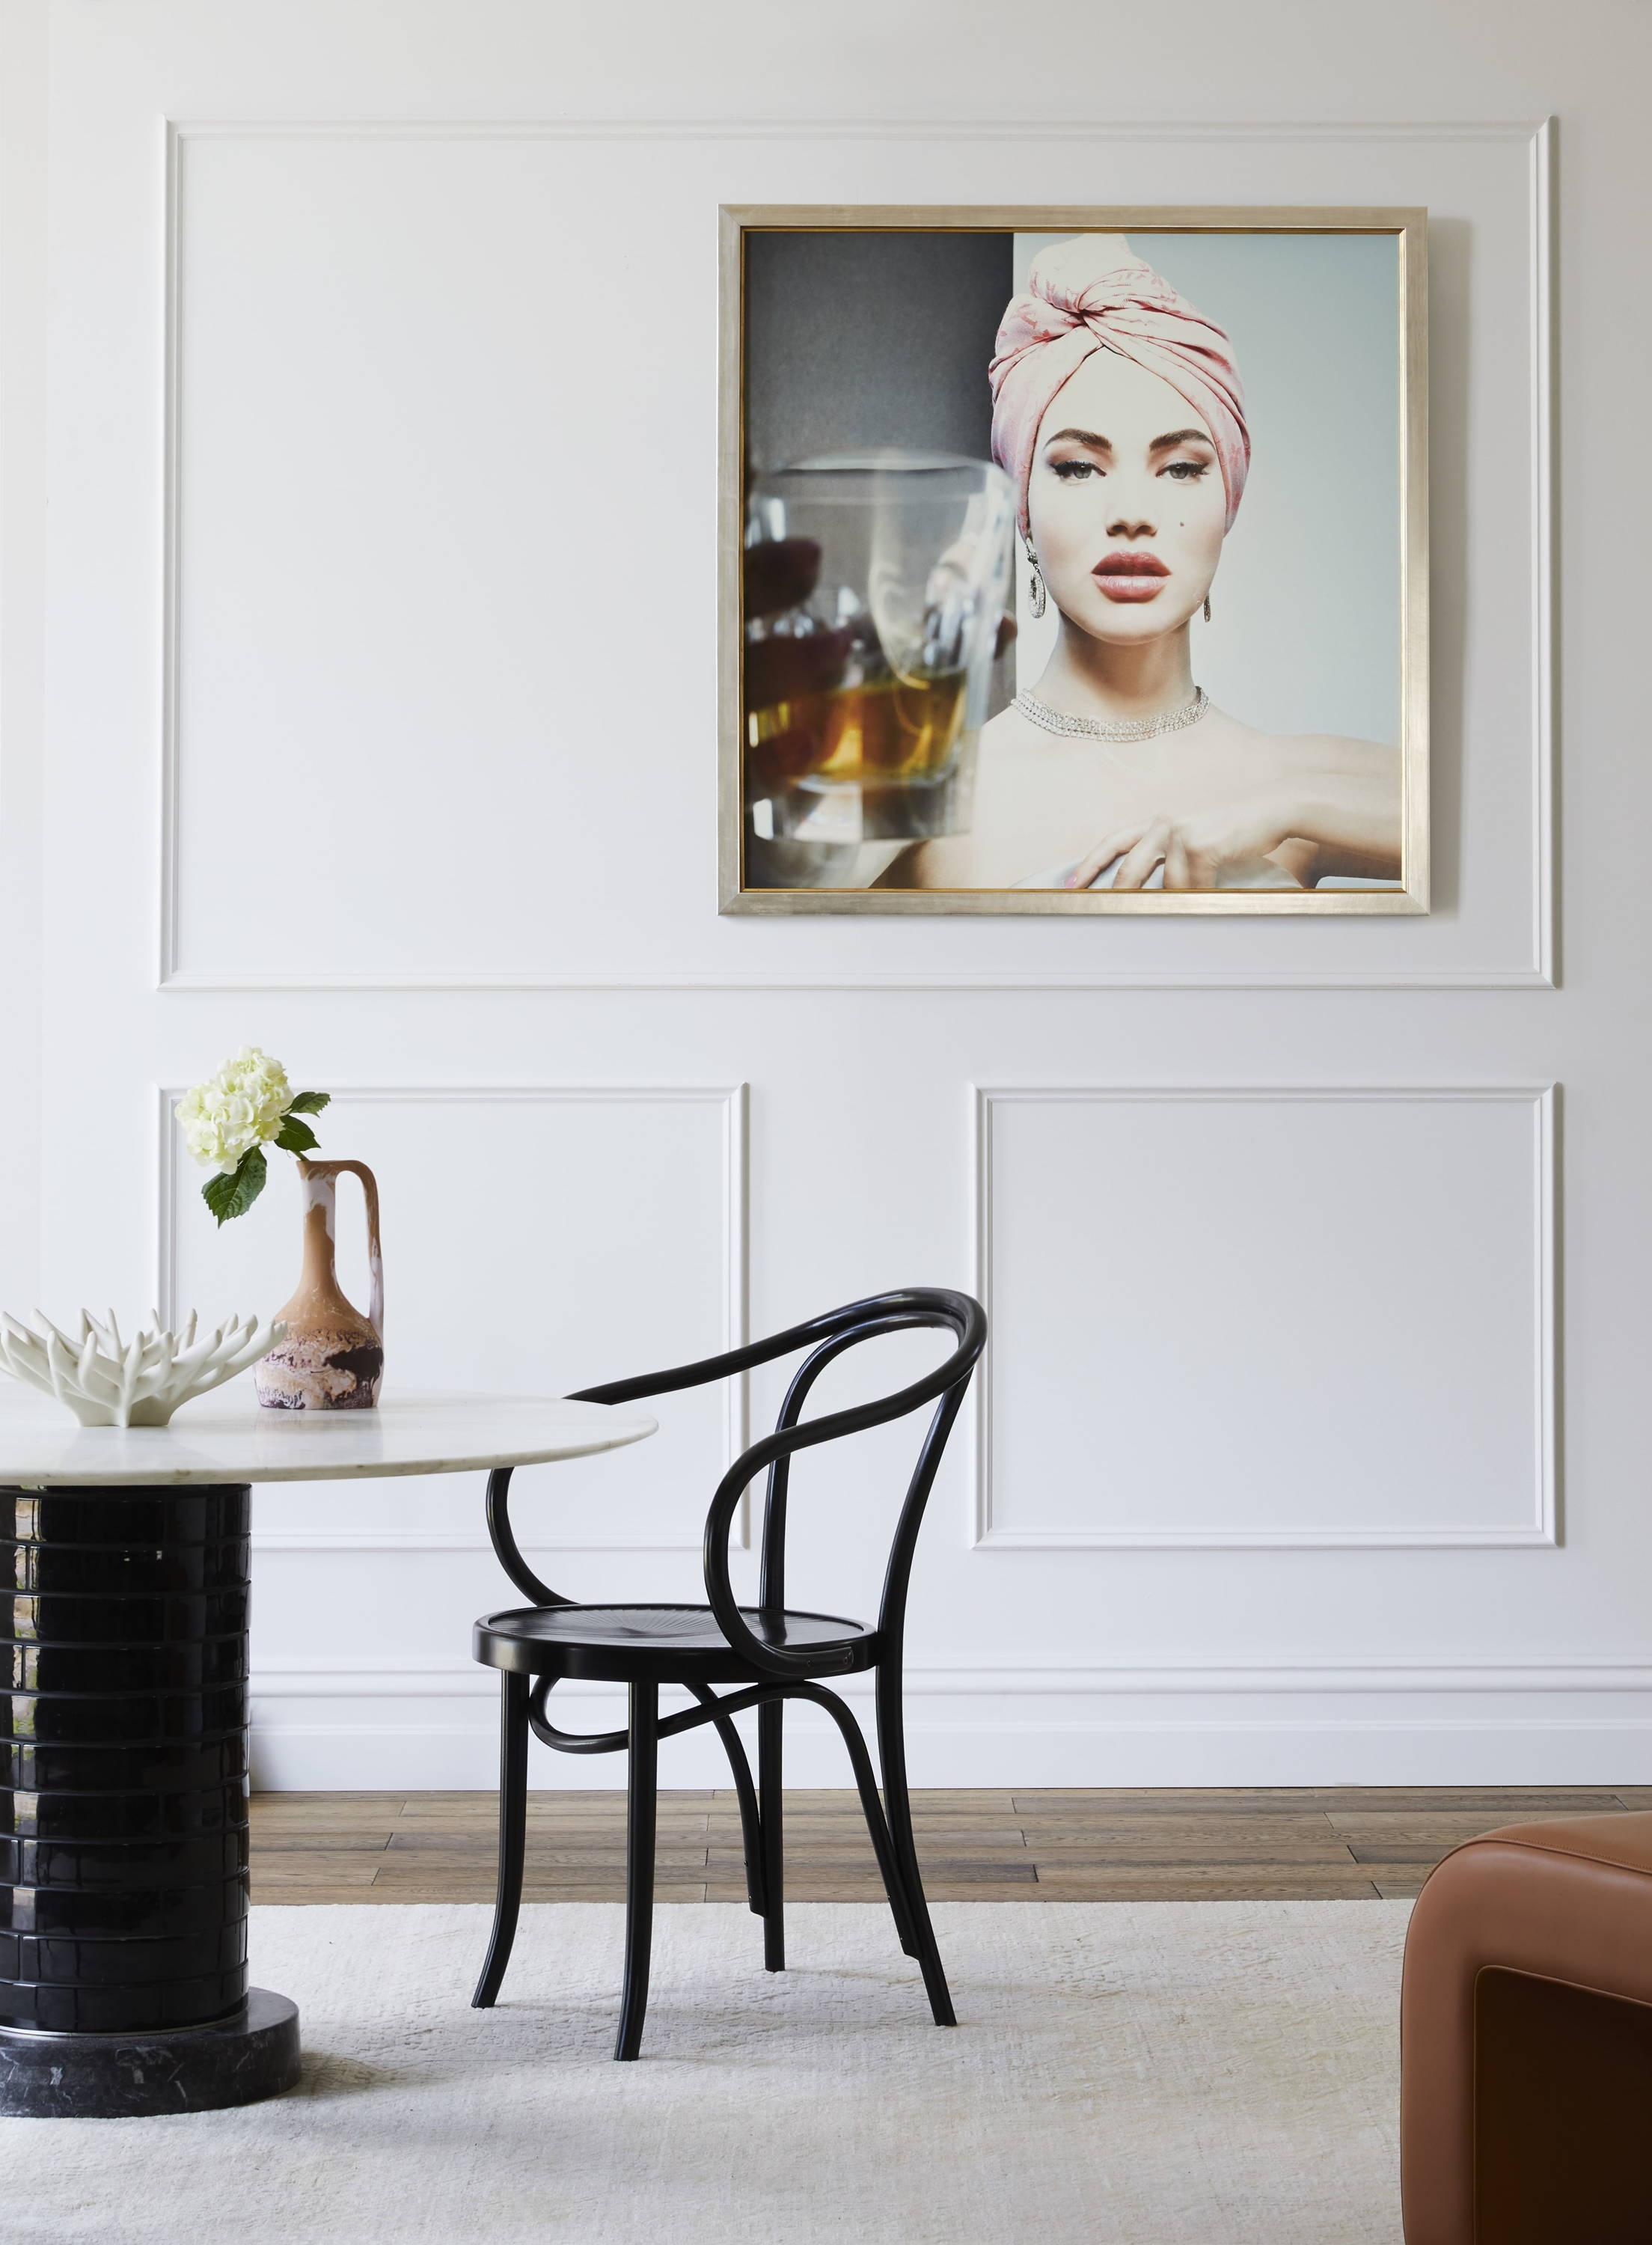 Framed Art in a Dining Room setting